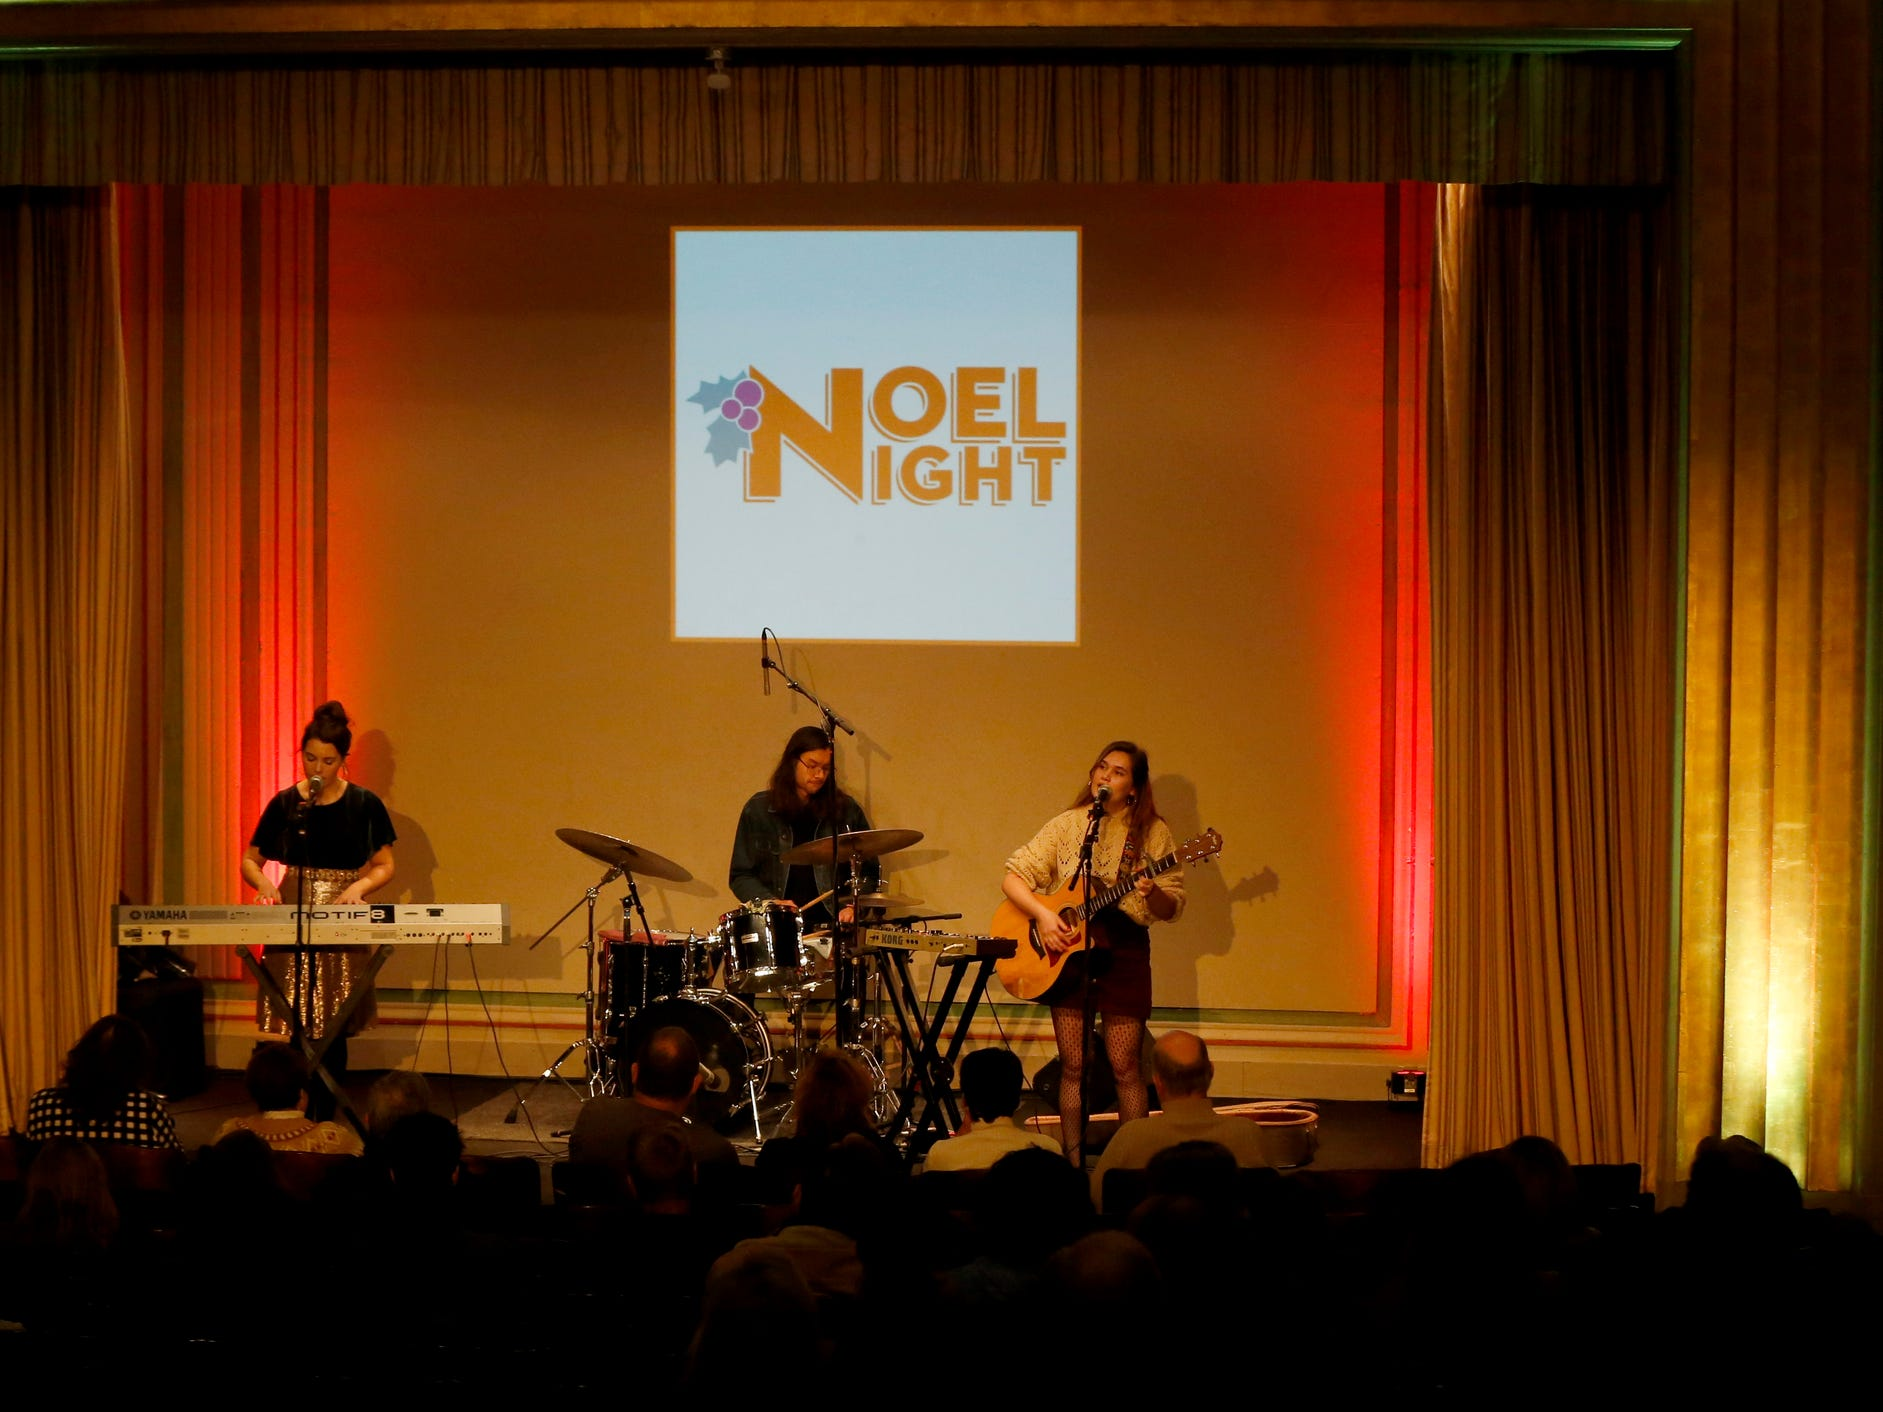 The band Lily and Madeleine perform during the daytime part of Noel Night at the Detroit Institute of Arts in Detroit on Saturday, December 1, 2018.